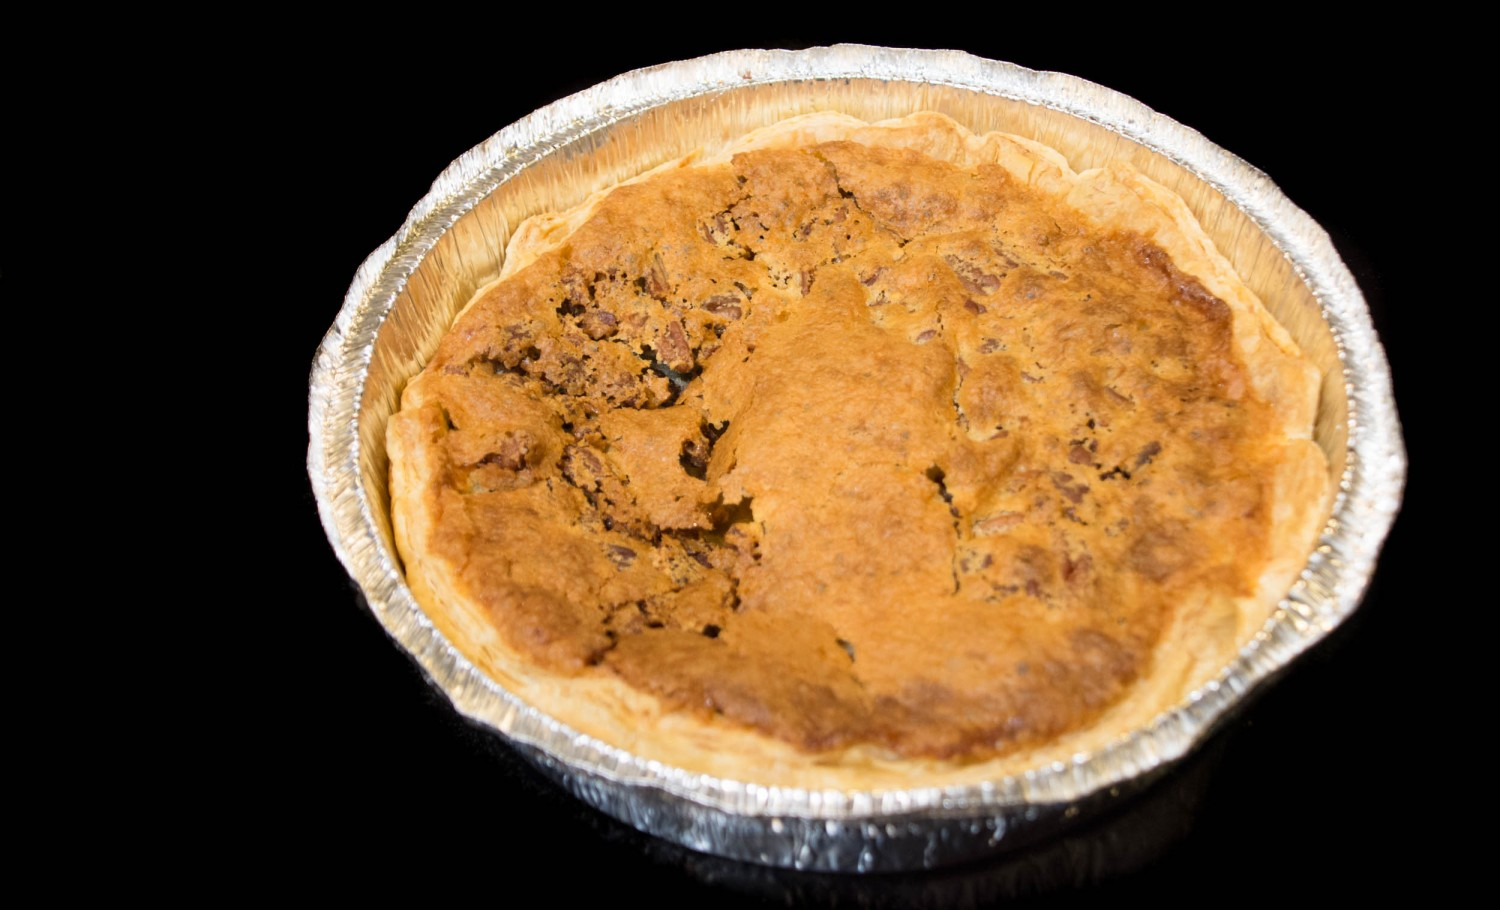 Greg Henderson: Bourbon Pecan Pie from Loblolly Creamery